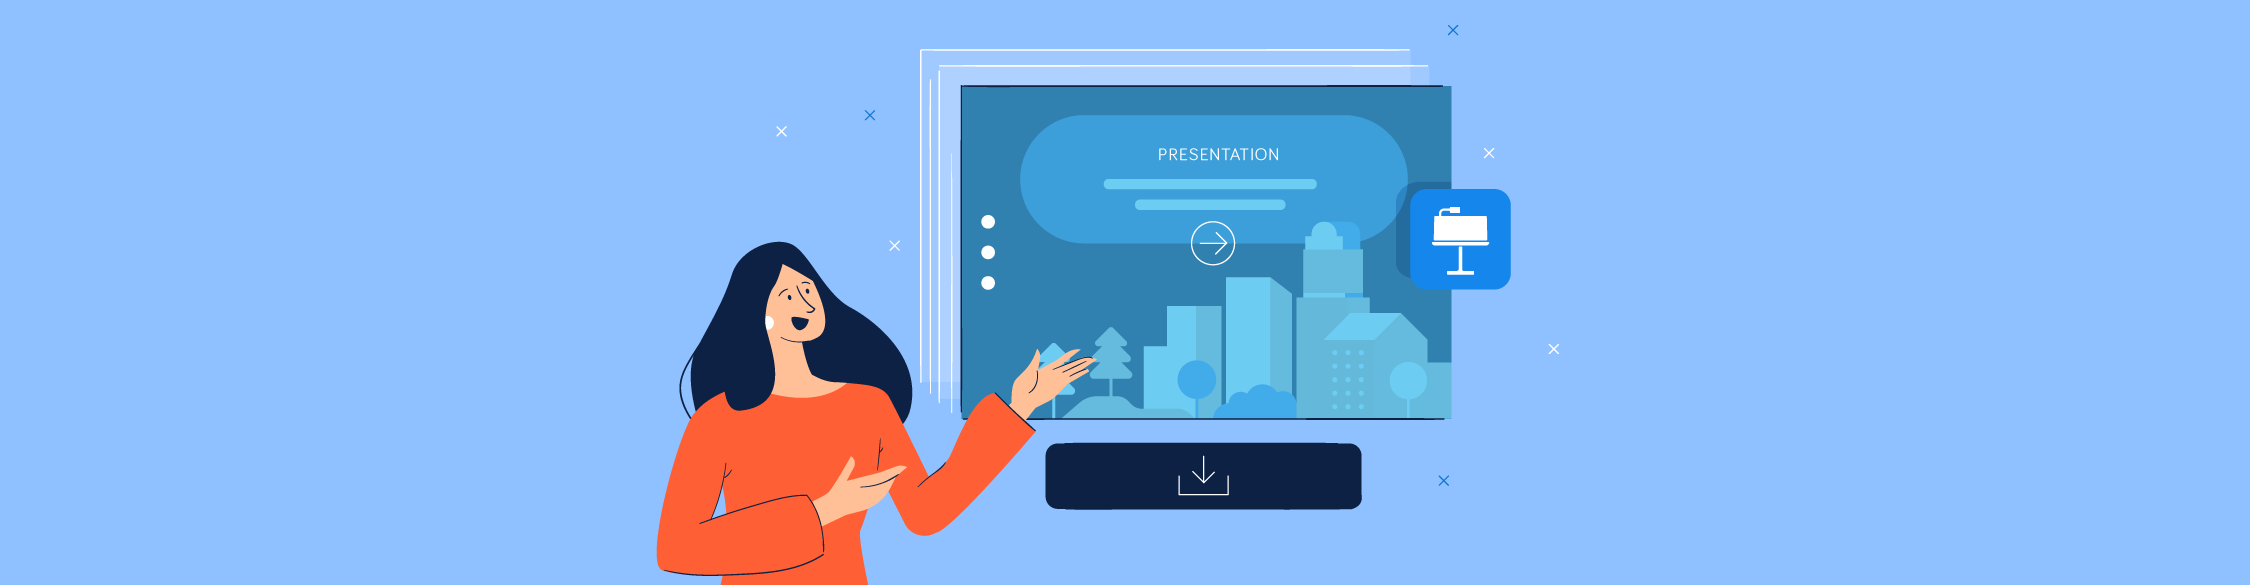 45 Best Keynote Templates to Customize & Download